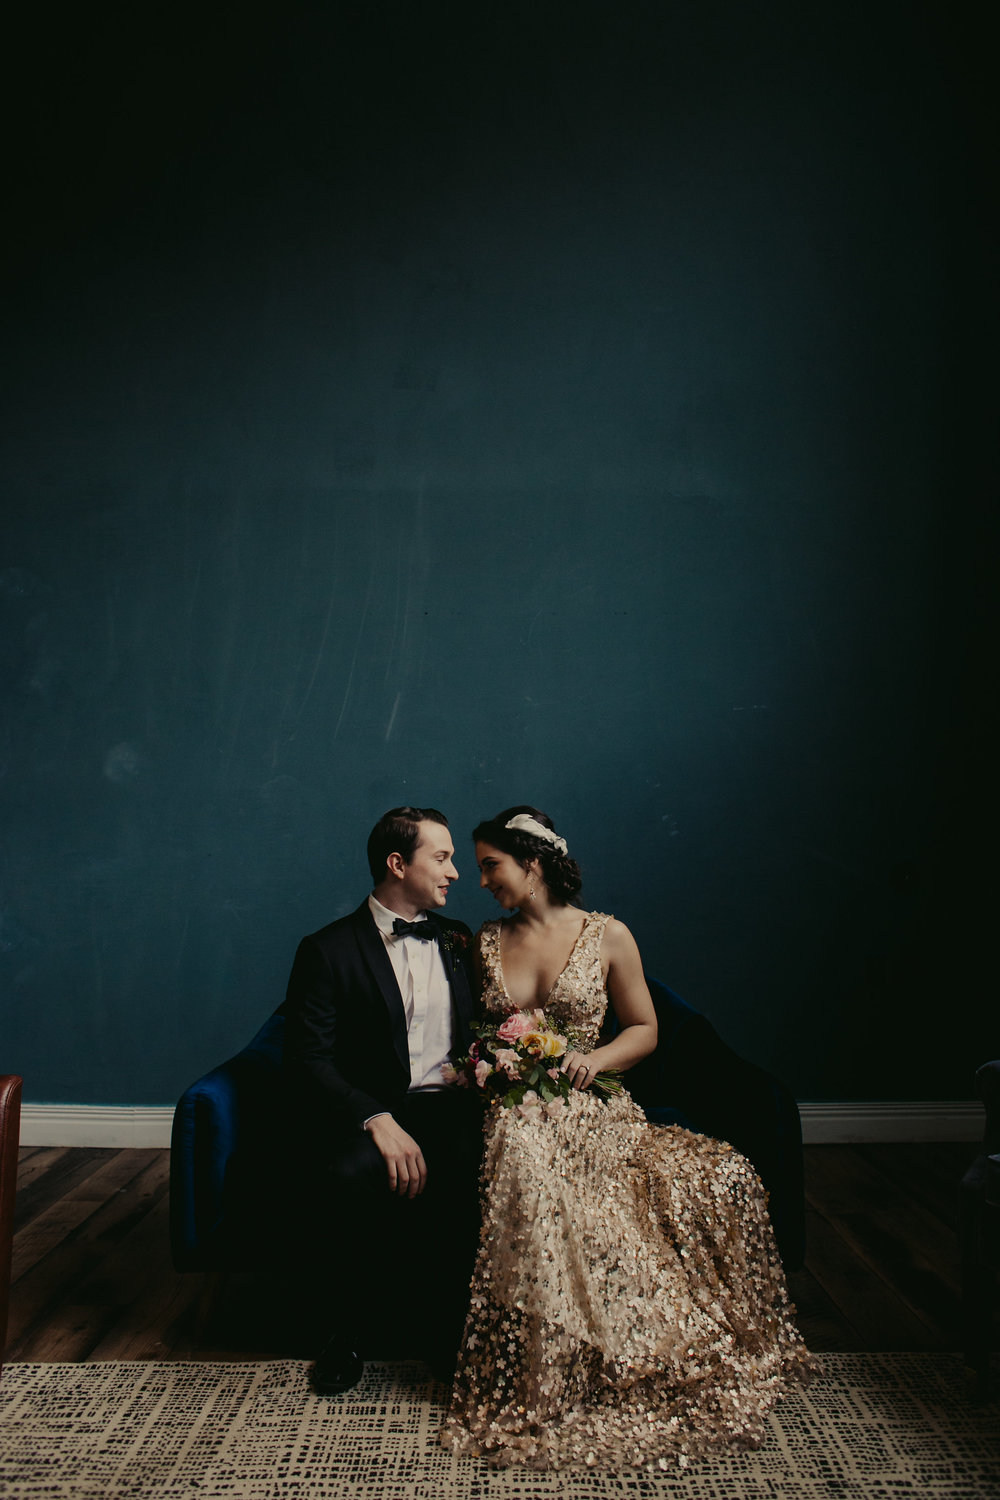 Williamsburg_Hotel_Wedding_Photographer_Chellise_Michael_Photography-153.jpg